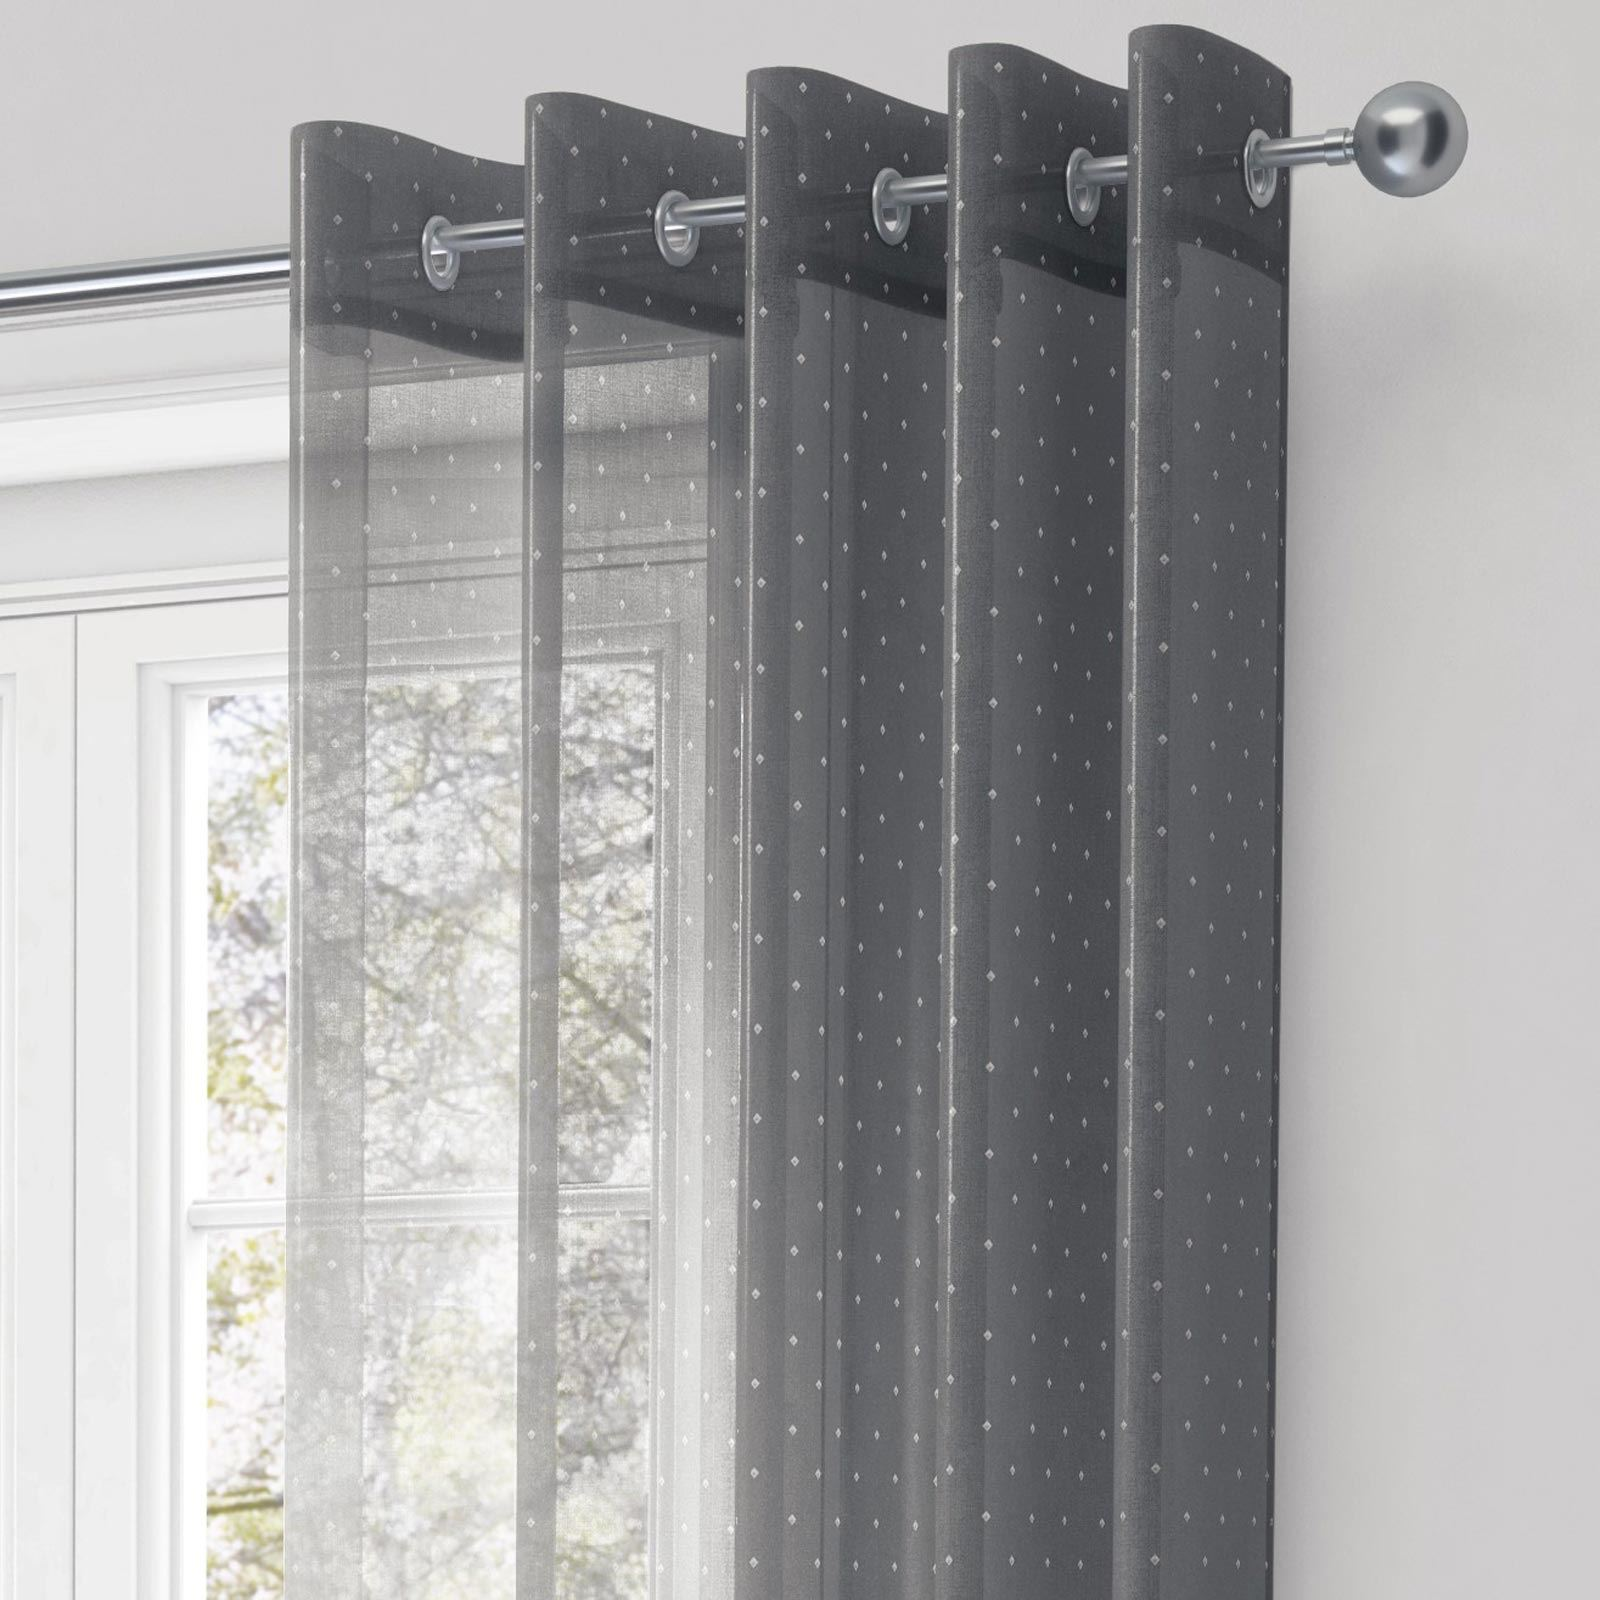 chicago voile curtain panel metallic sparkle eyelet ready. Black Bedroom Furniture Sets. Home Design Ideas